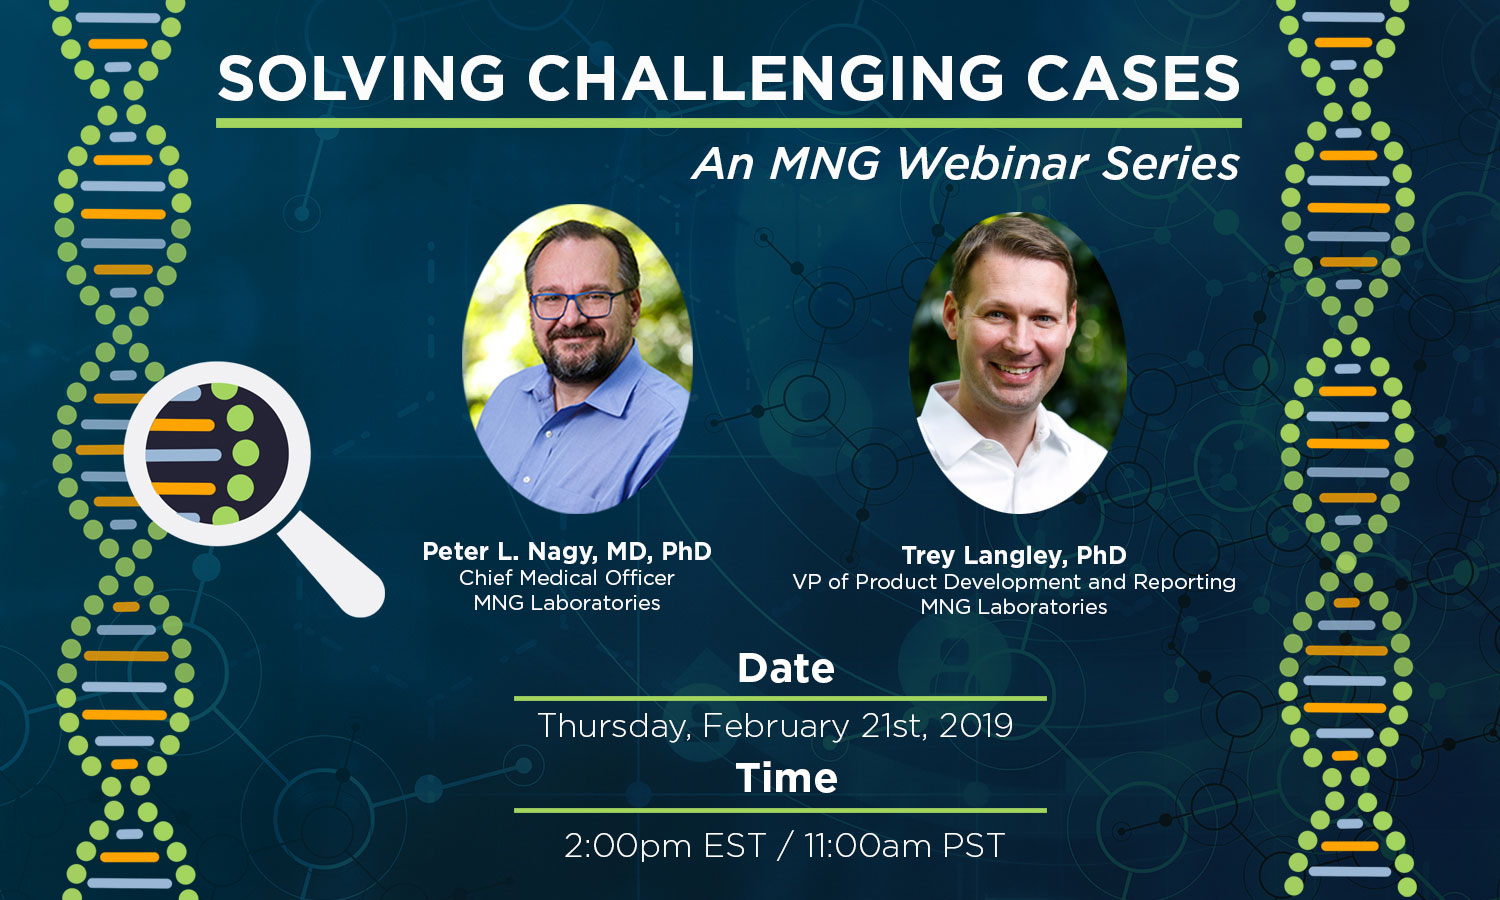 Solving Challenging Cases: An MNG Webinar Series